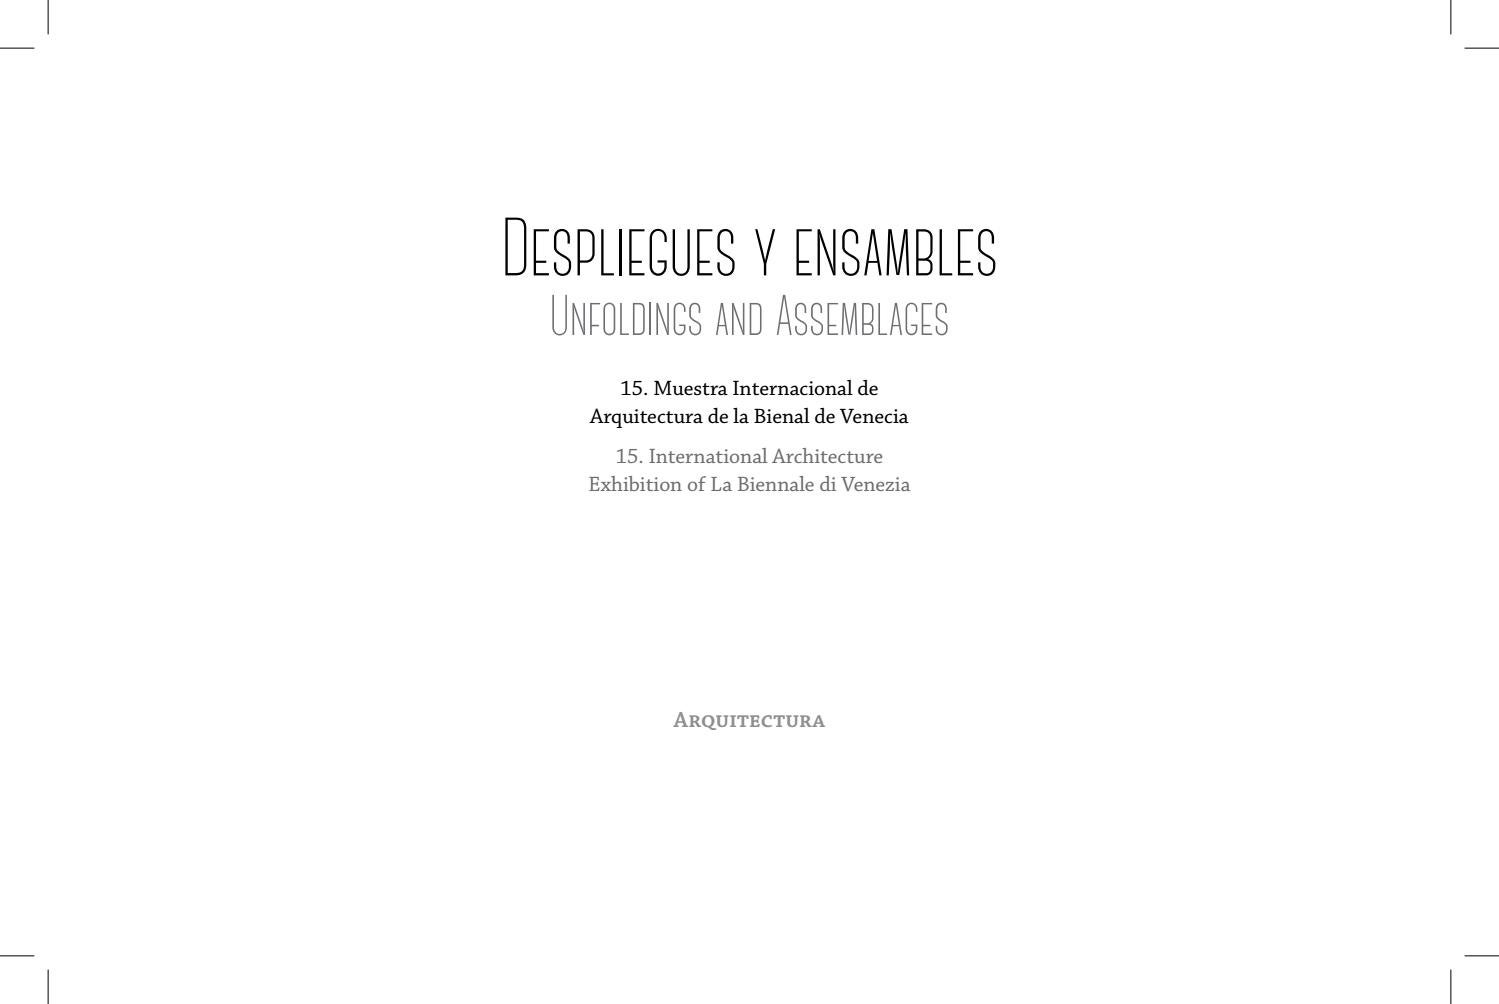 Unfoldings and assemblages by unfoldings and assemblages issuu malvernweather Images